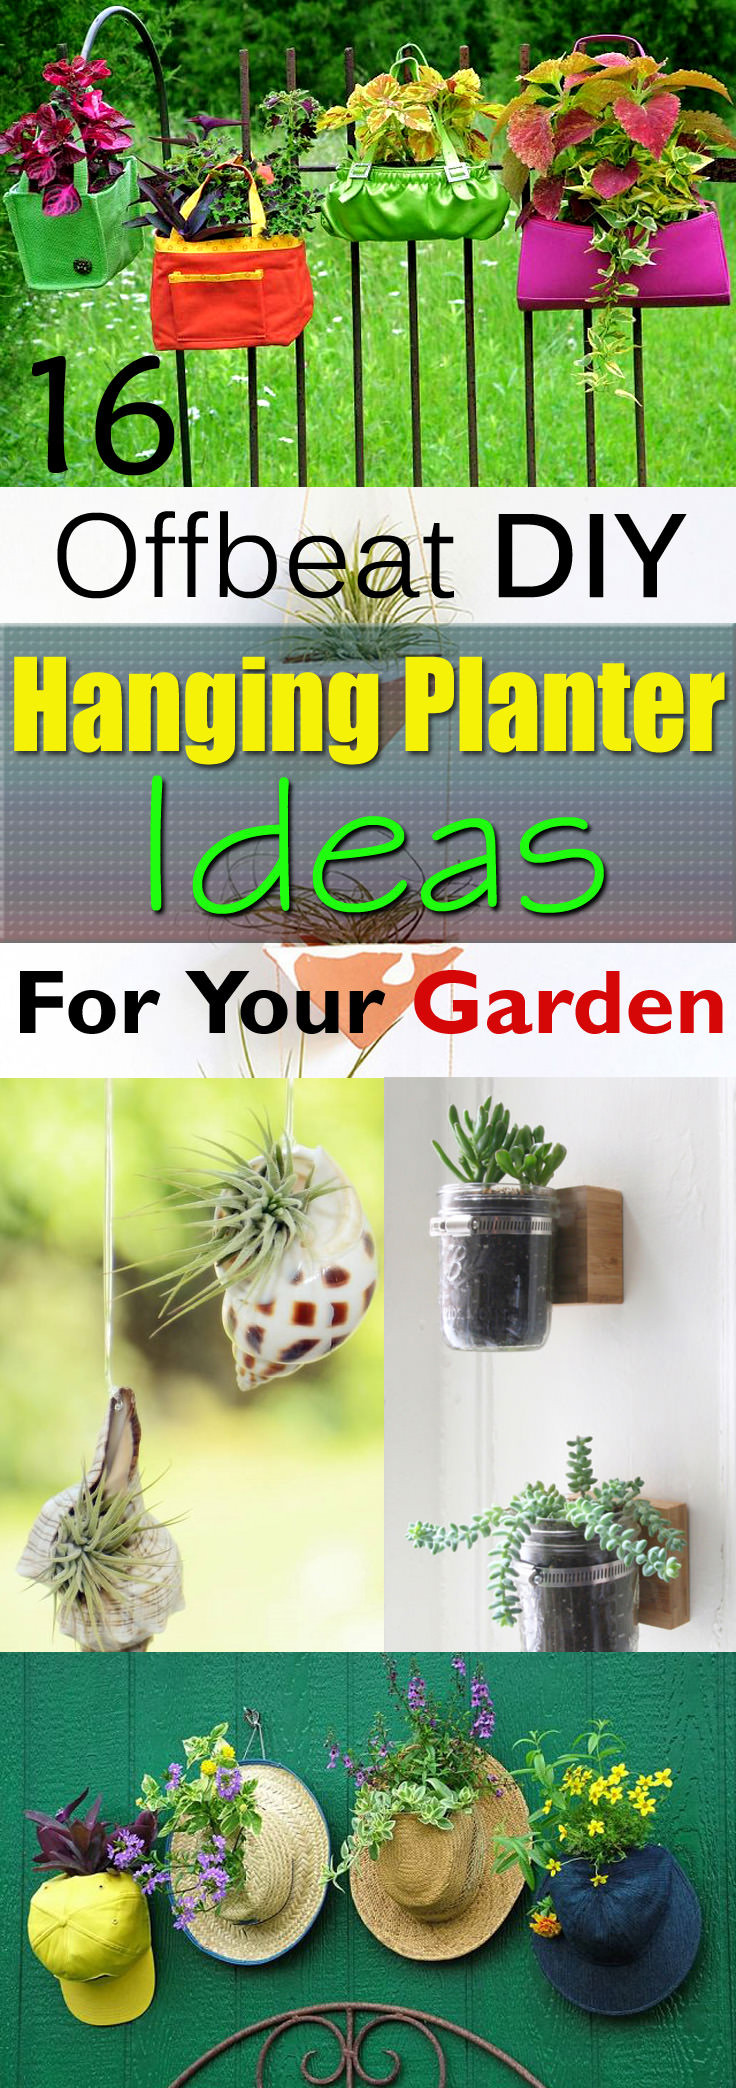 Best ideas about DIY Planter Ideas . Save or Pin 16 fbeat DIY Hanging Planter Ideas Now.